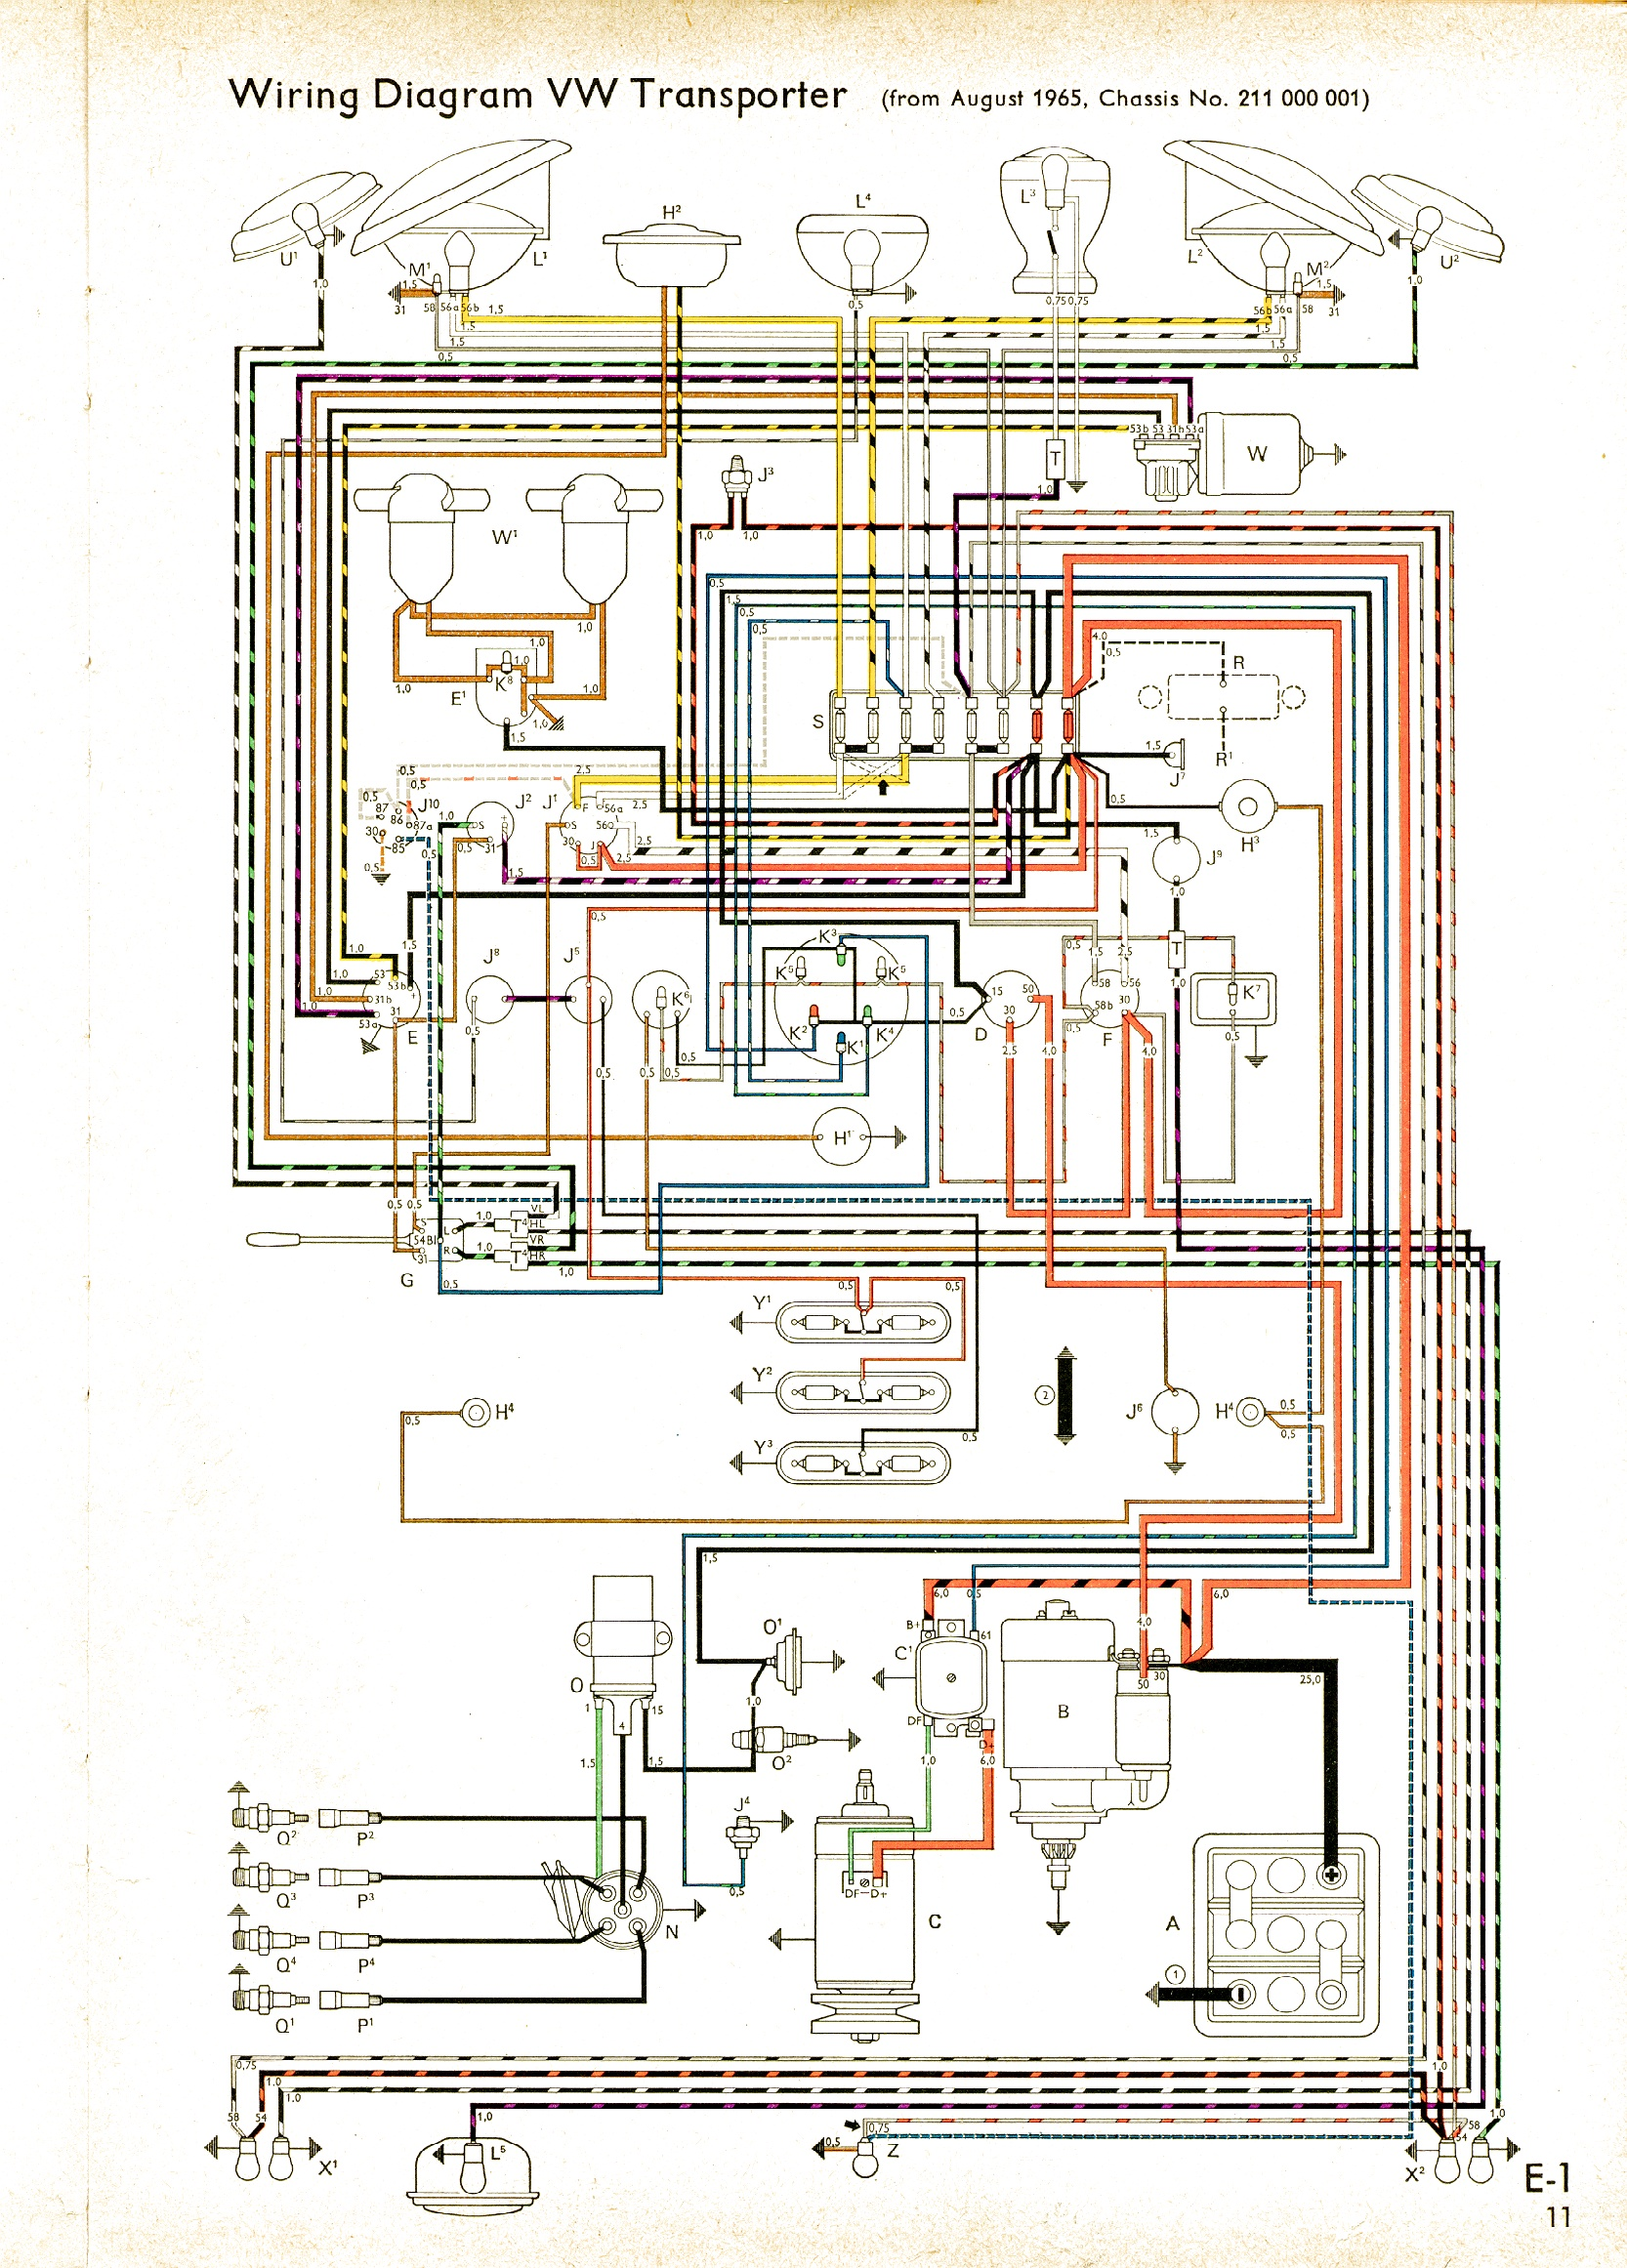 1967 vw beetle wiring diagram RIDAwNe 1967 vw bug wiring diagram on 1967 download wirning diagrams 1970 vw bug wiring diagram at crackthecode.co